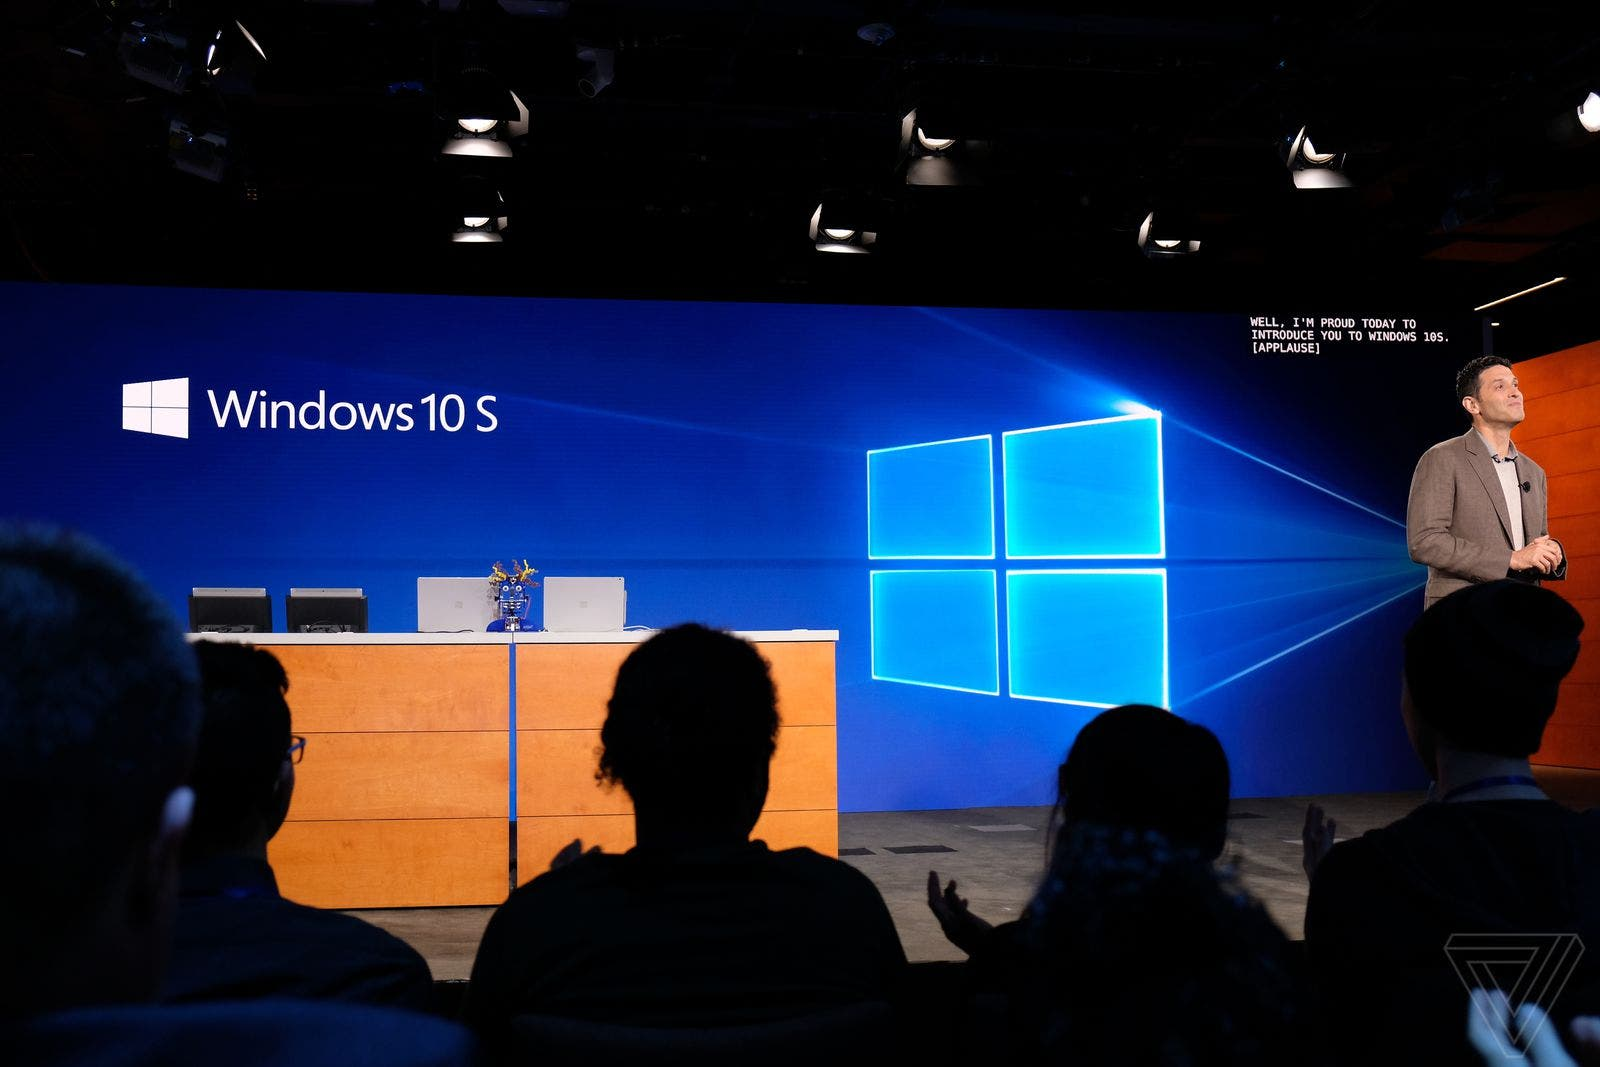 Hacker knackt Hochsicherheits- Windows in 3 Stunden